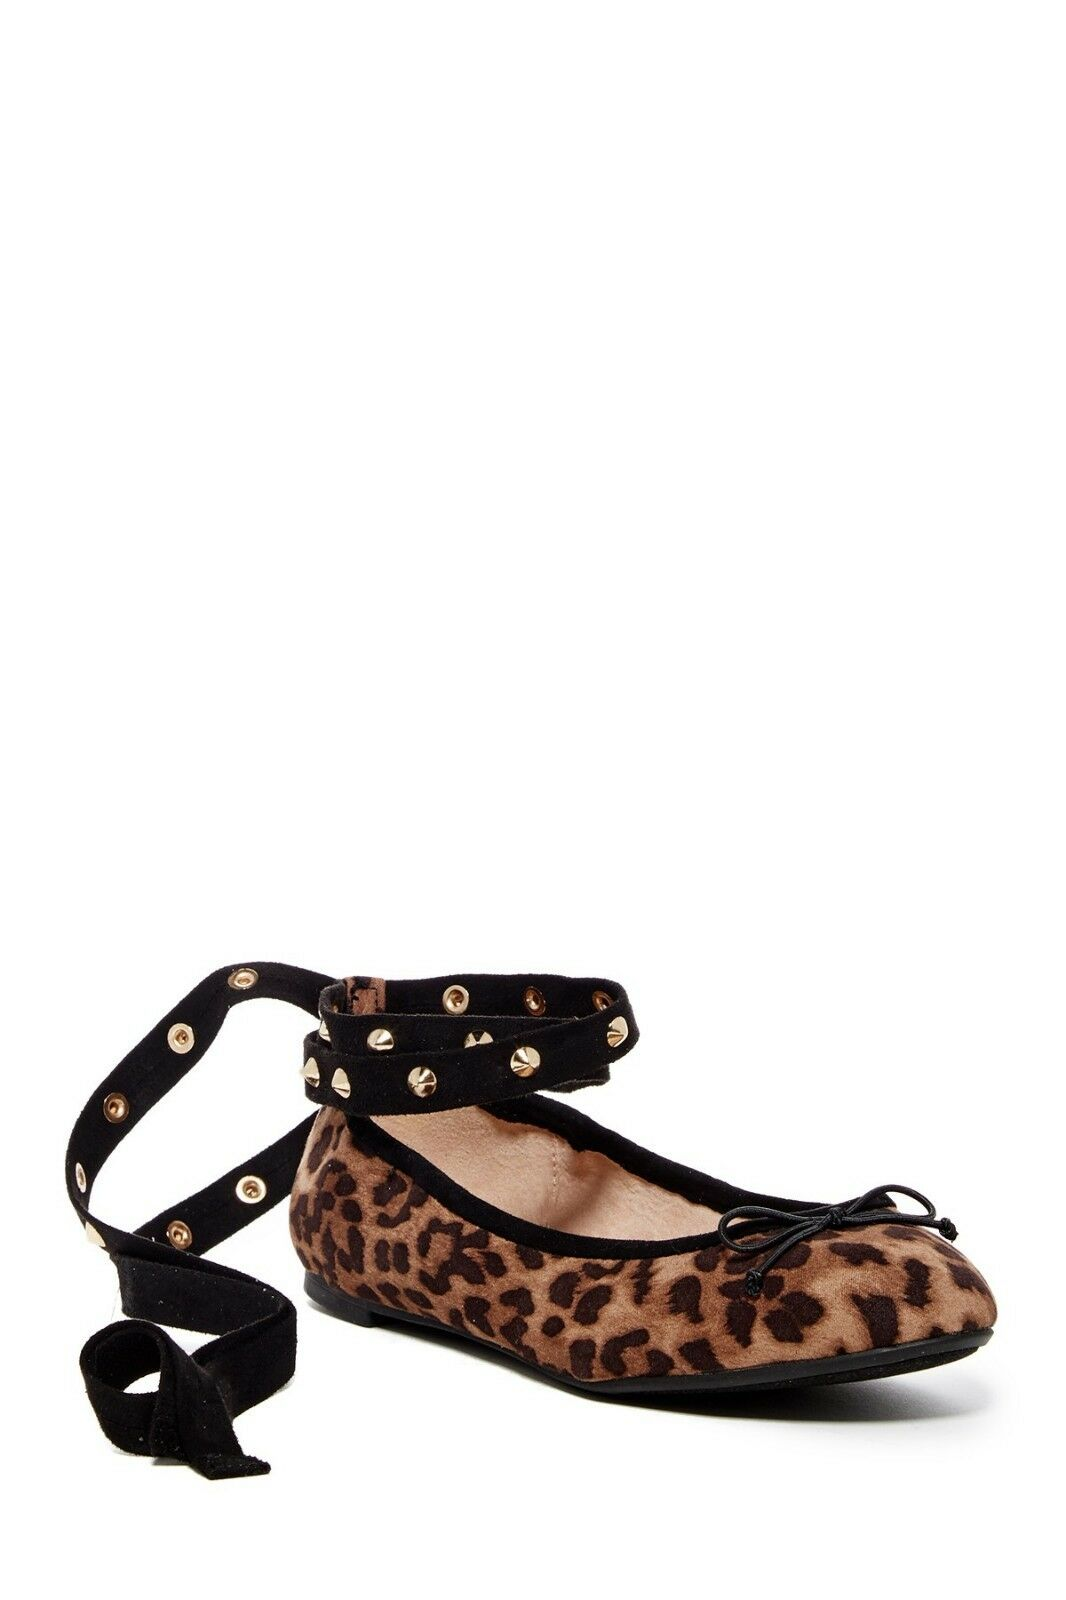 New CIRCUS BY SAM EDELMAN Celyn Studded Lace-Up Ballet Flat Scarpe size 8